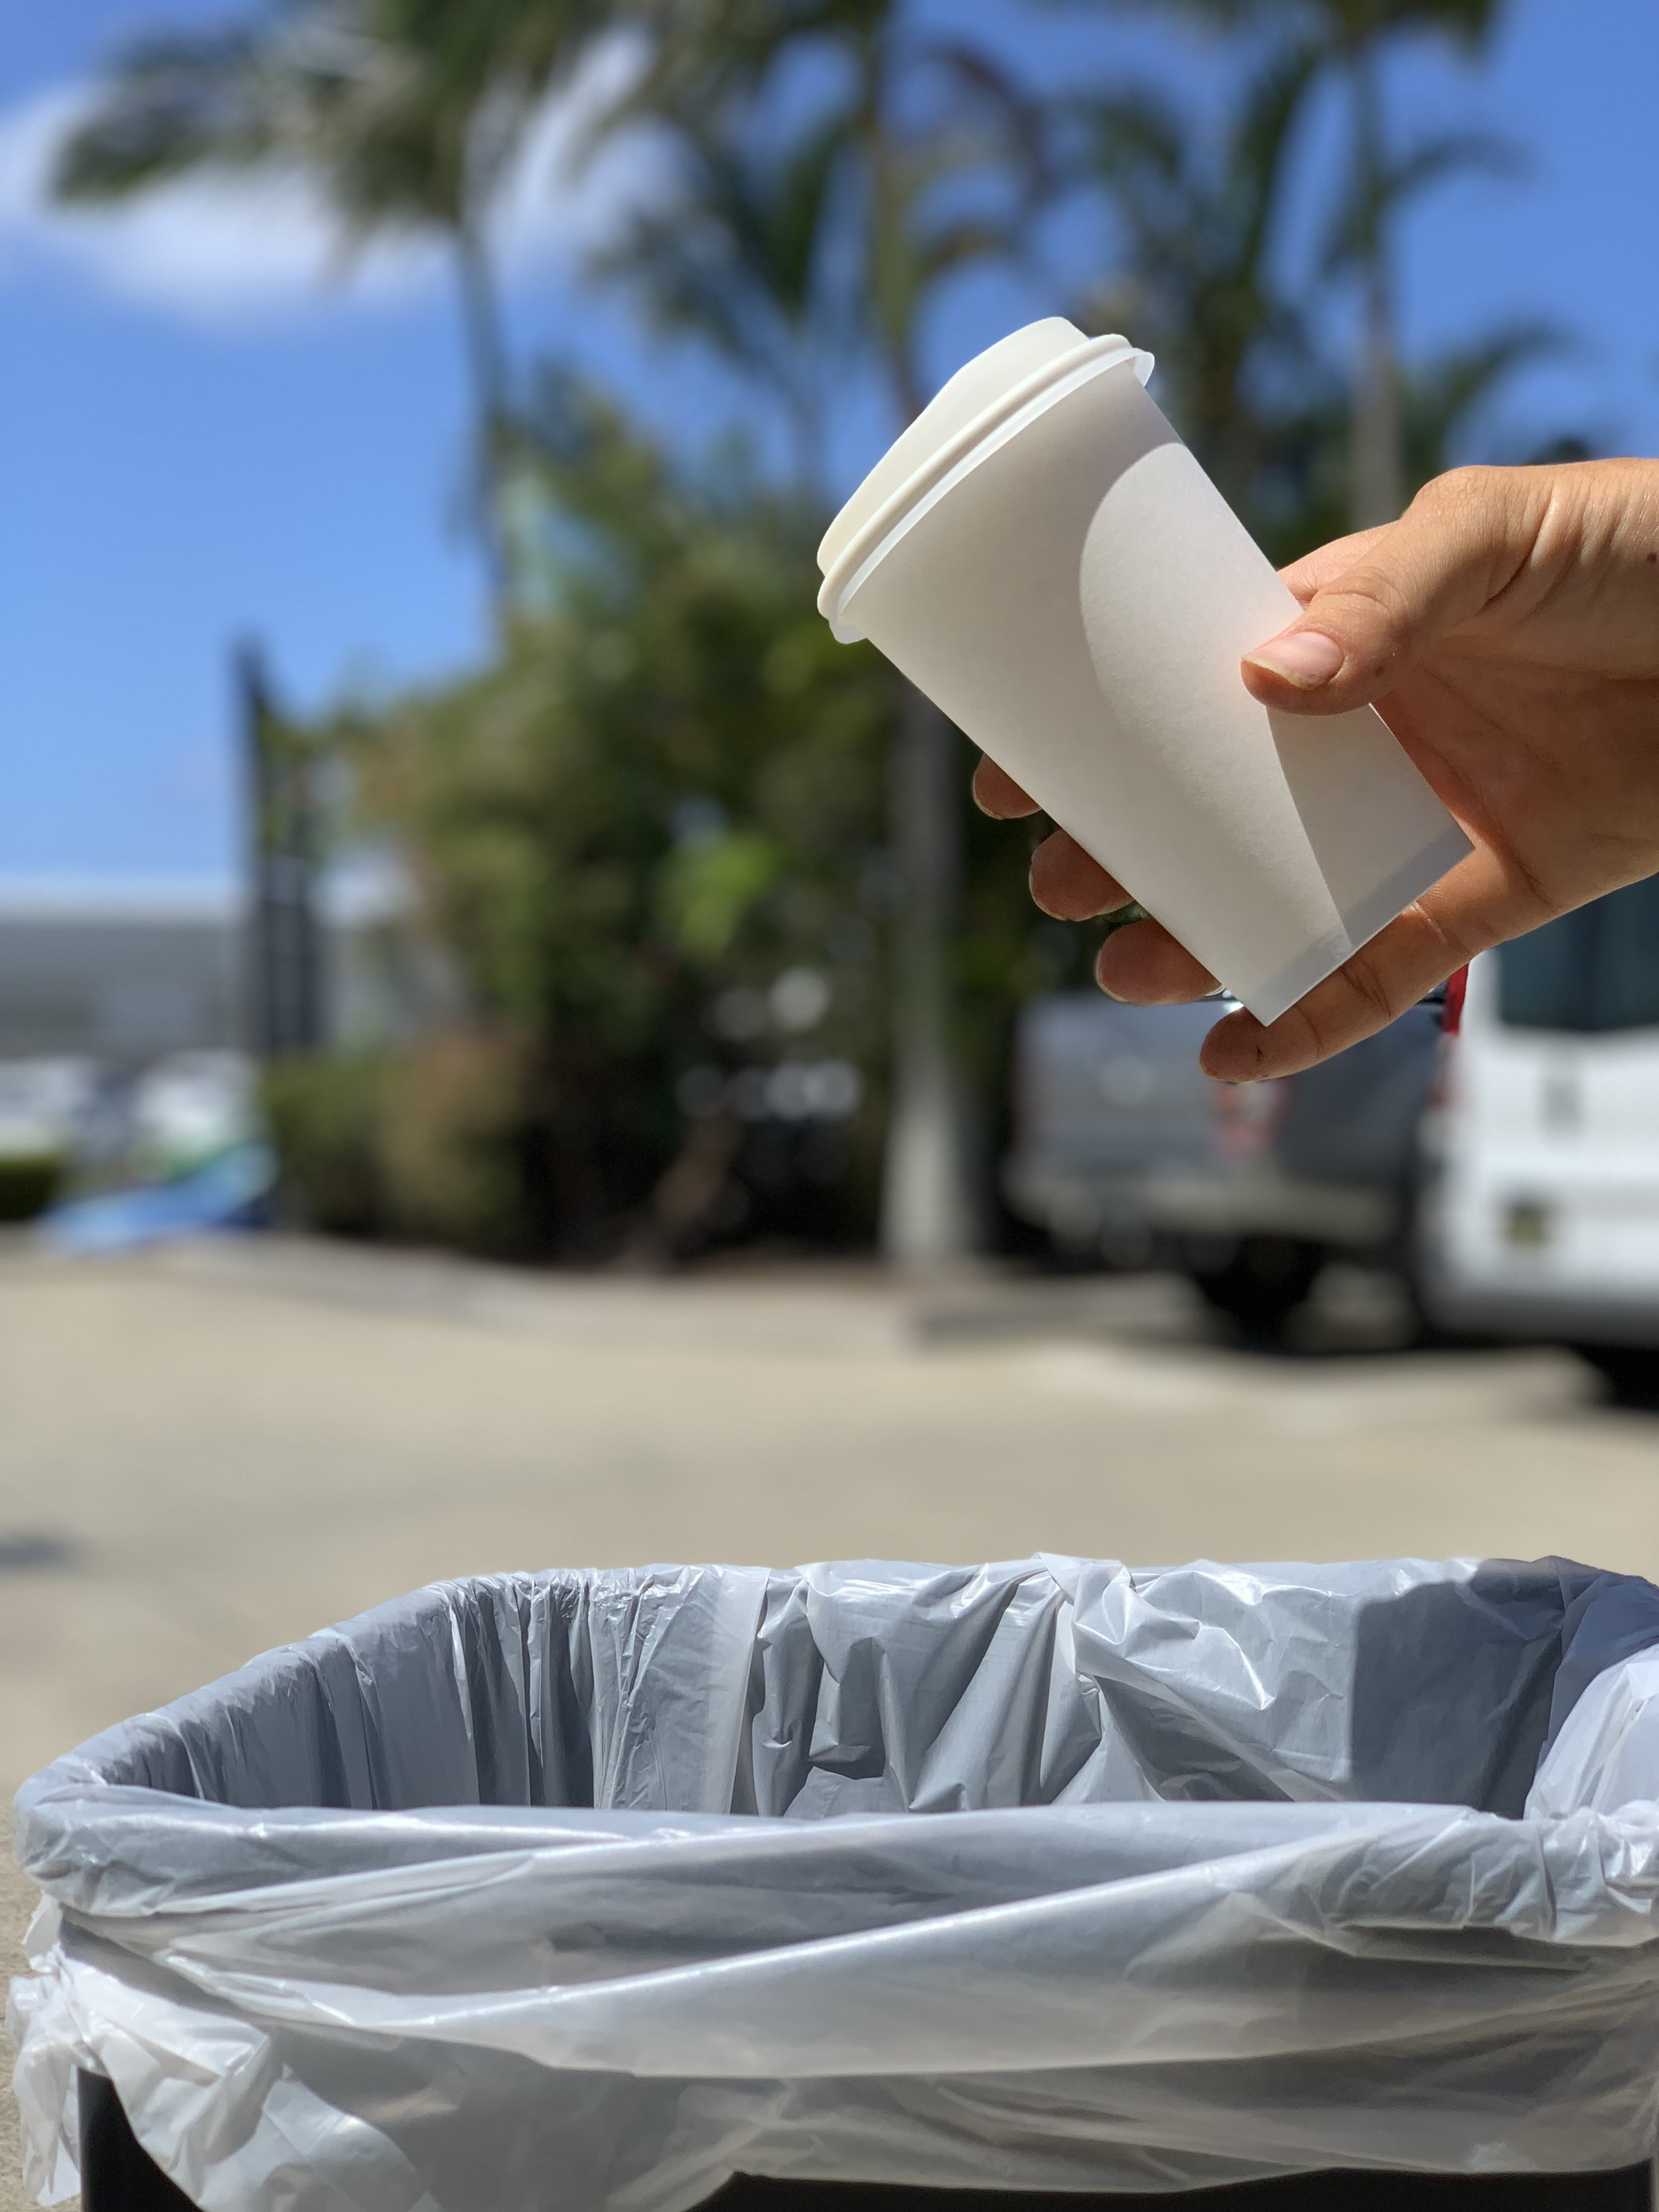 The Disposable Dilemma: Why Single-Use Coffee Cups are a Big Problem - January 14th, 2019.Author: Nicholas Cleary